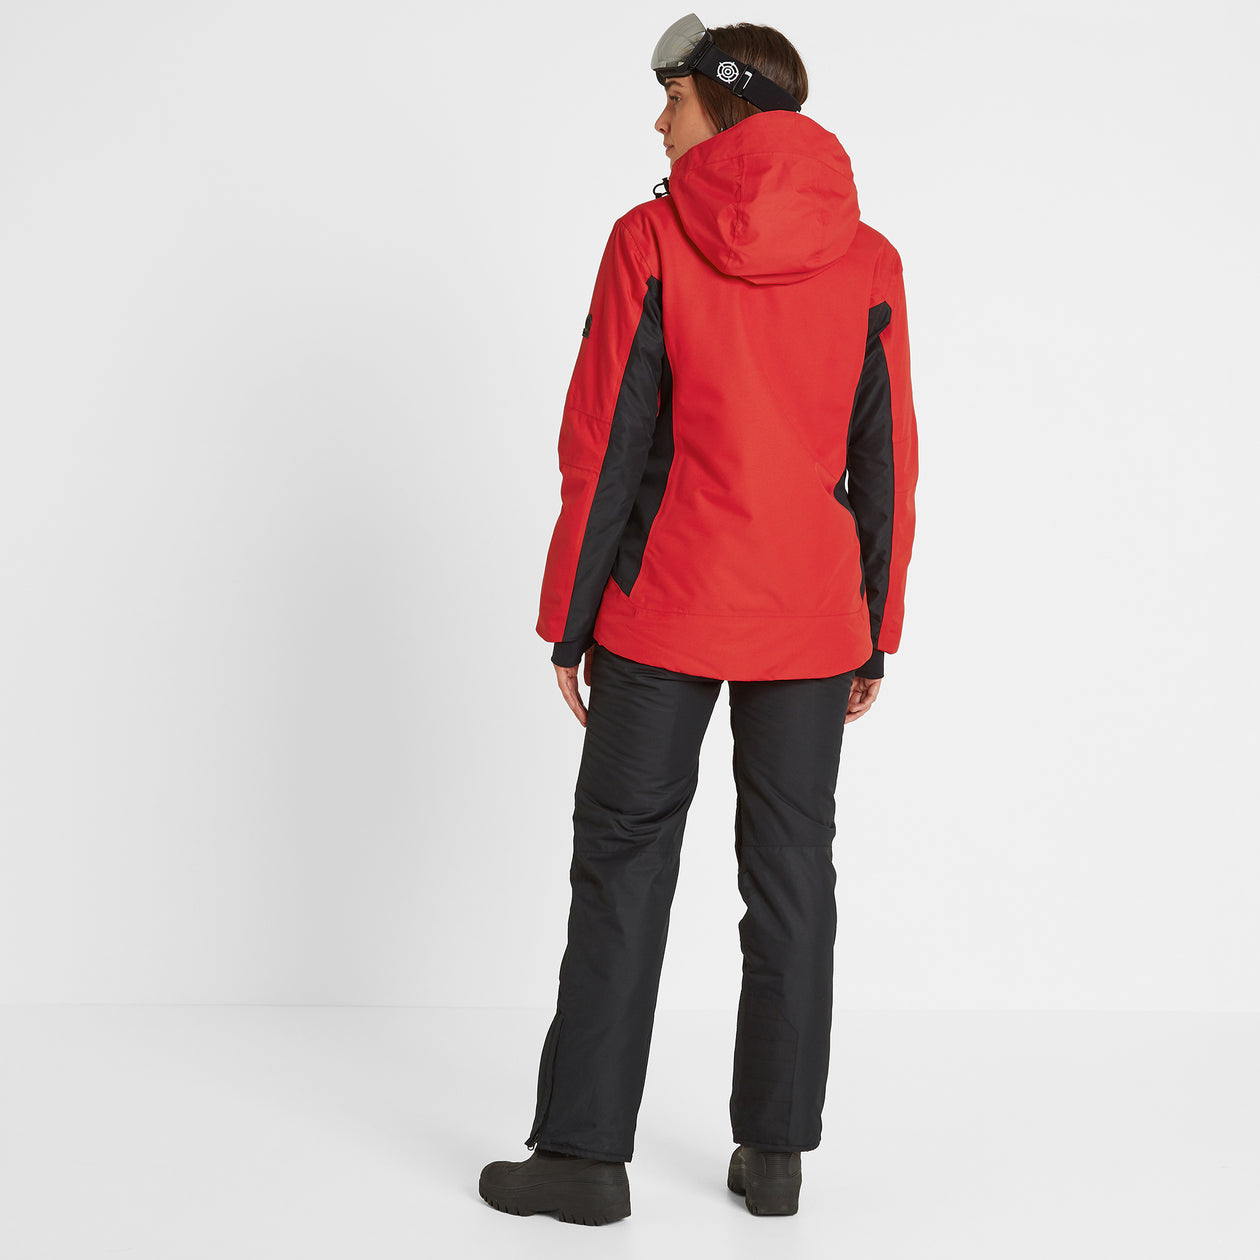 Piper Womens Waterproof Insulated Ski Jacket - Rouge Red/Black image 4